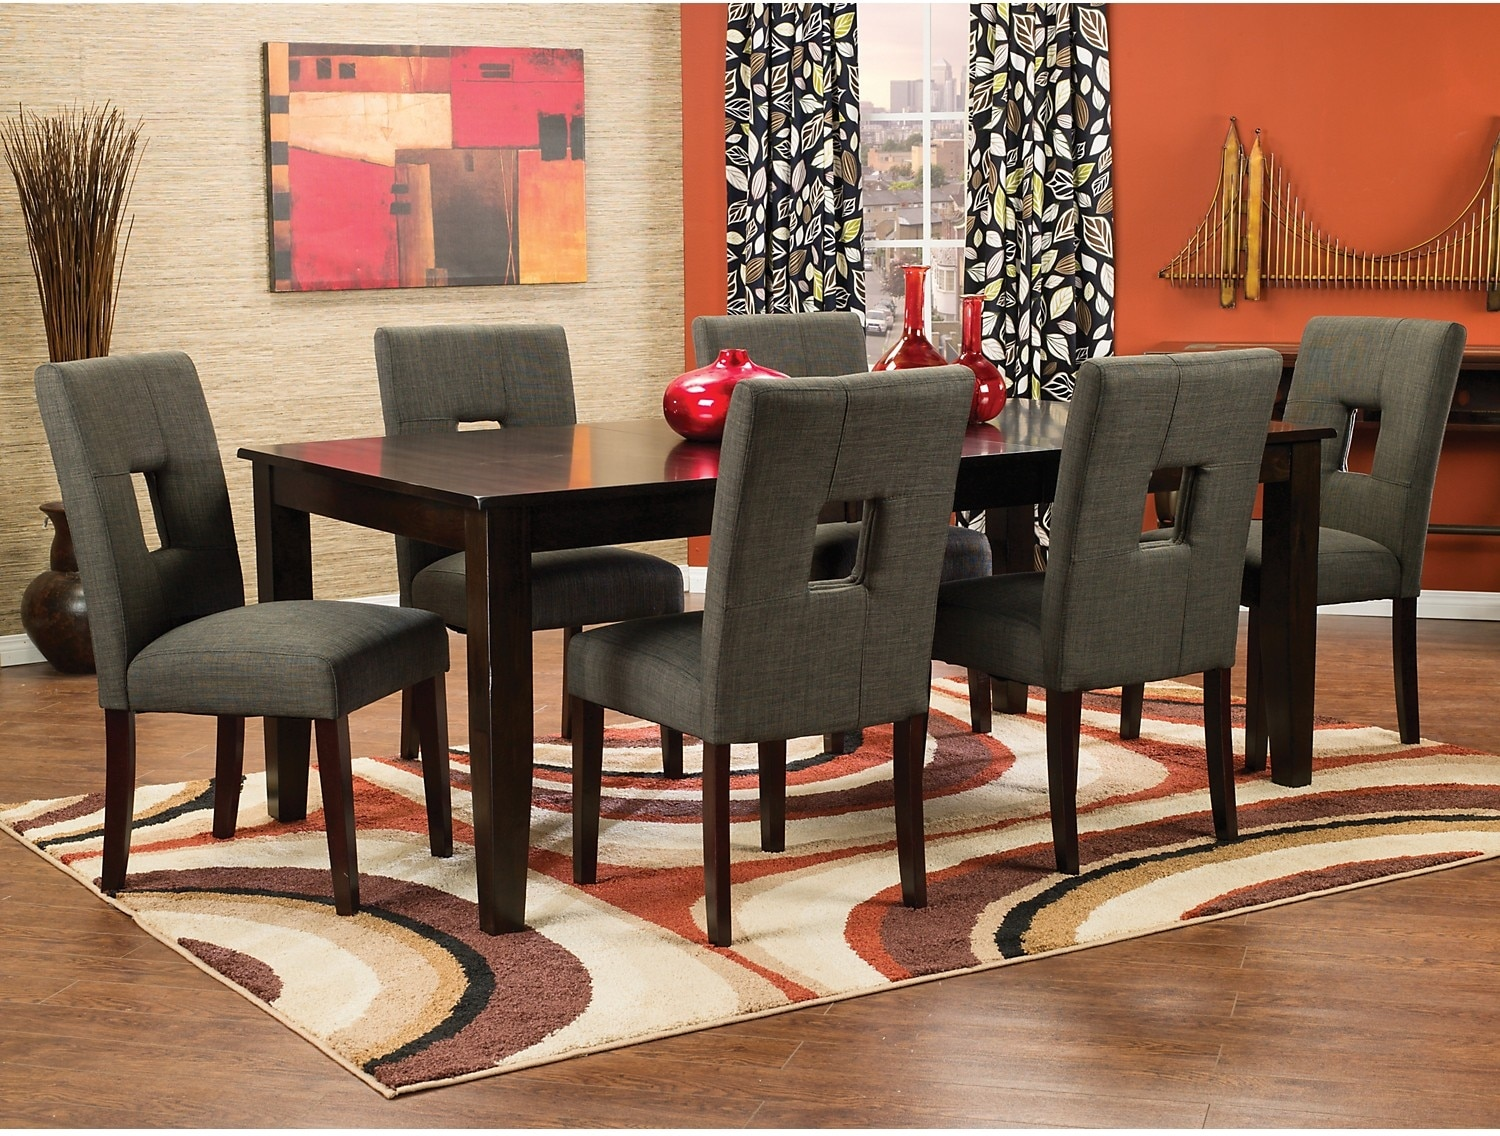 Dining Room Furniture - Dakota 8-Piece Dining Package with Grey Chairs